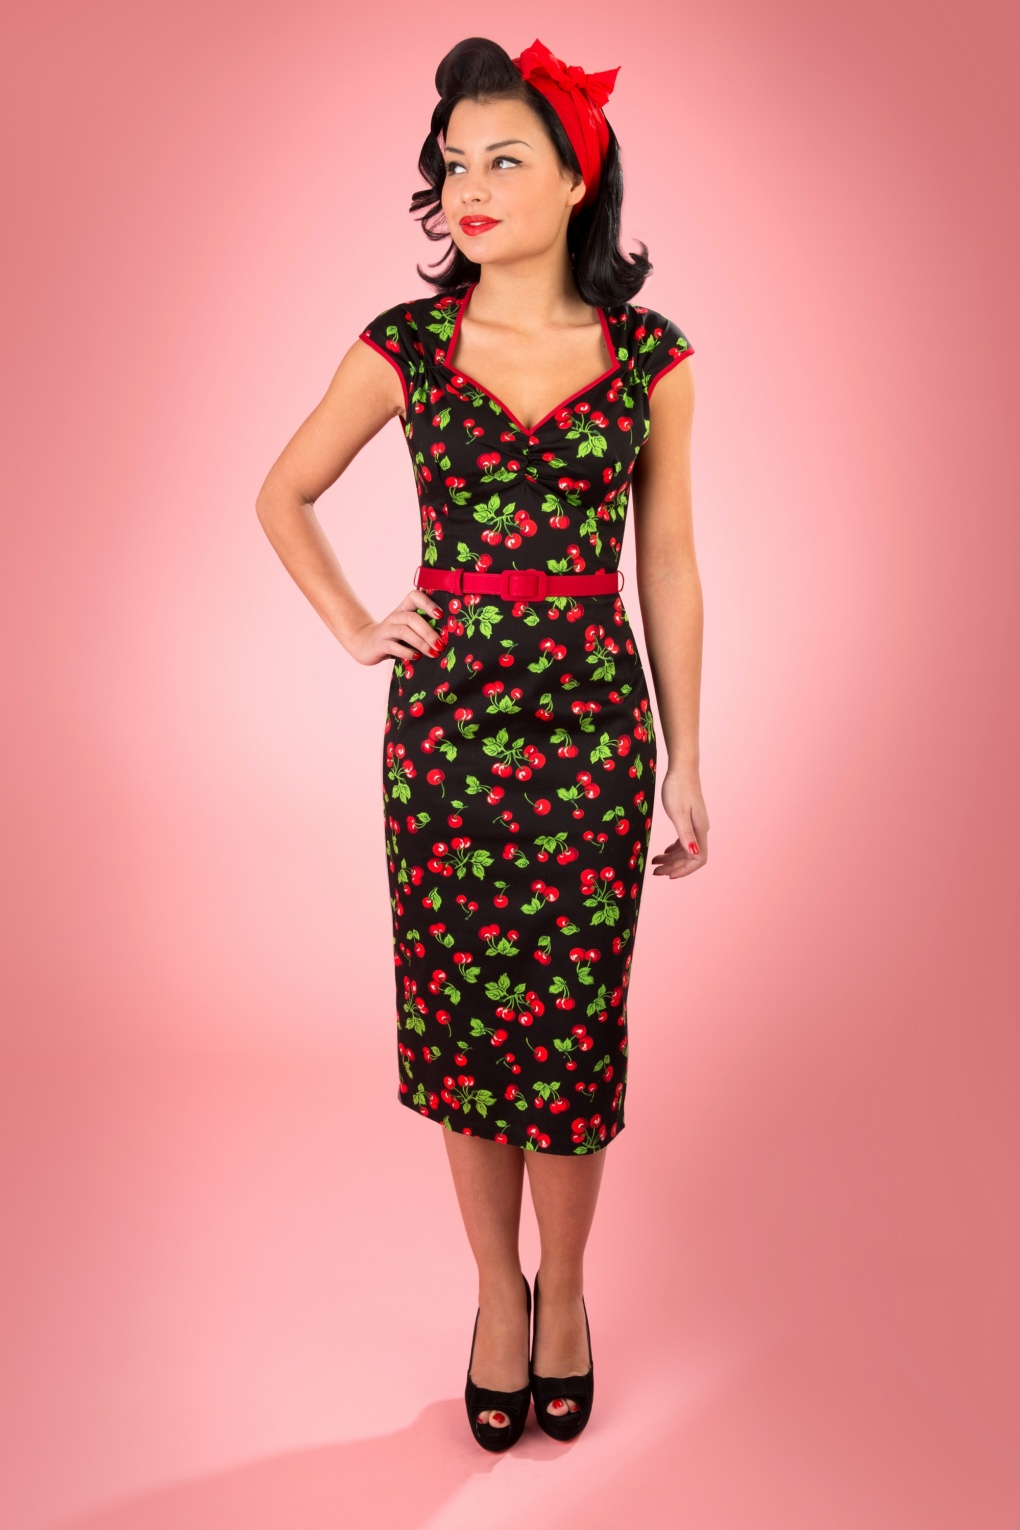 Pinup girl clothing store